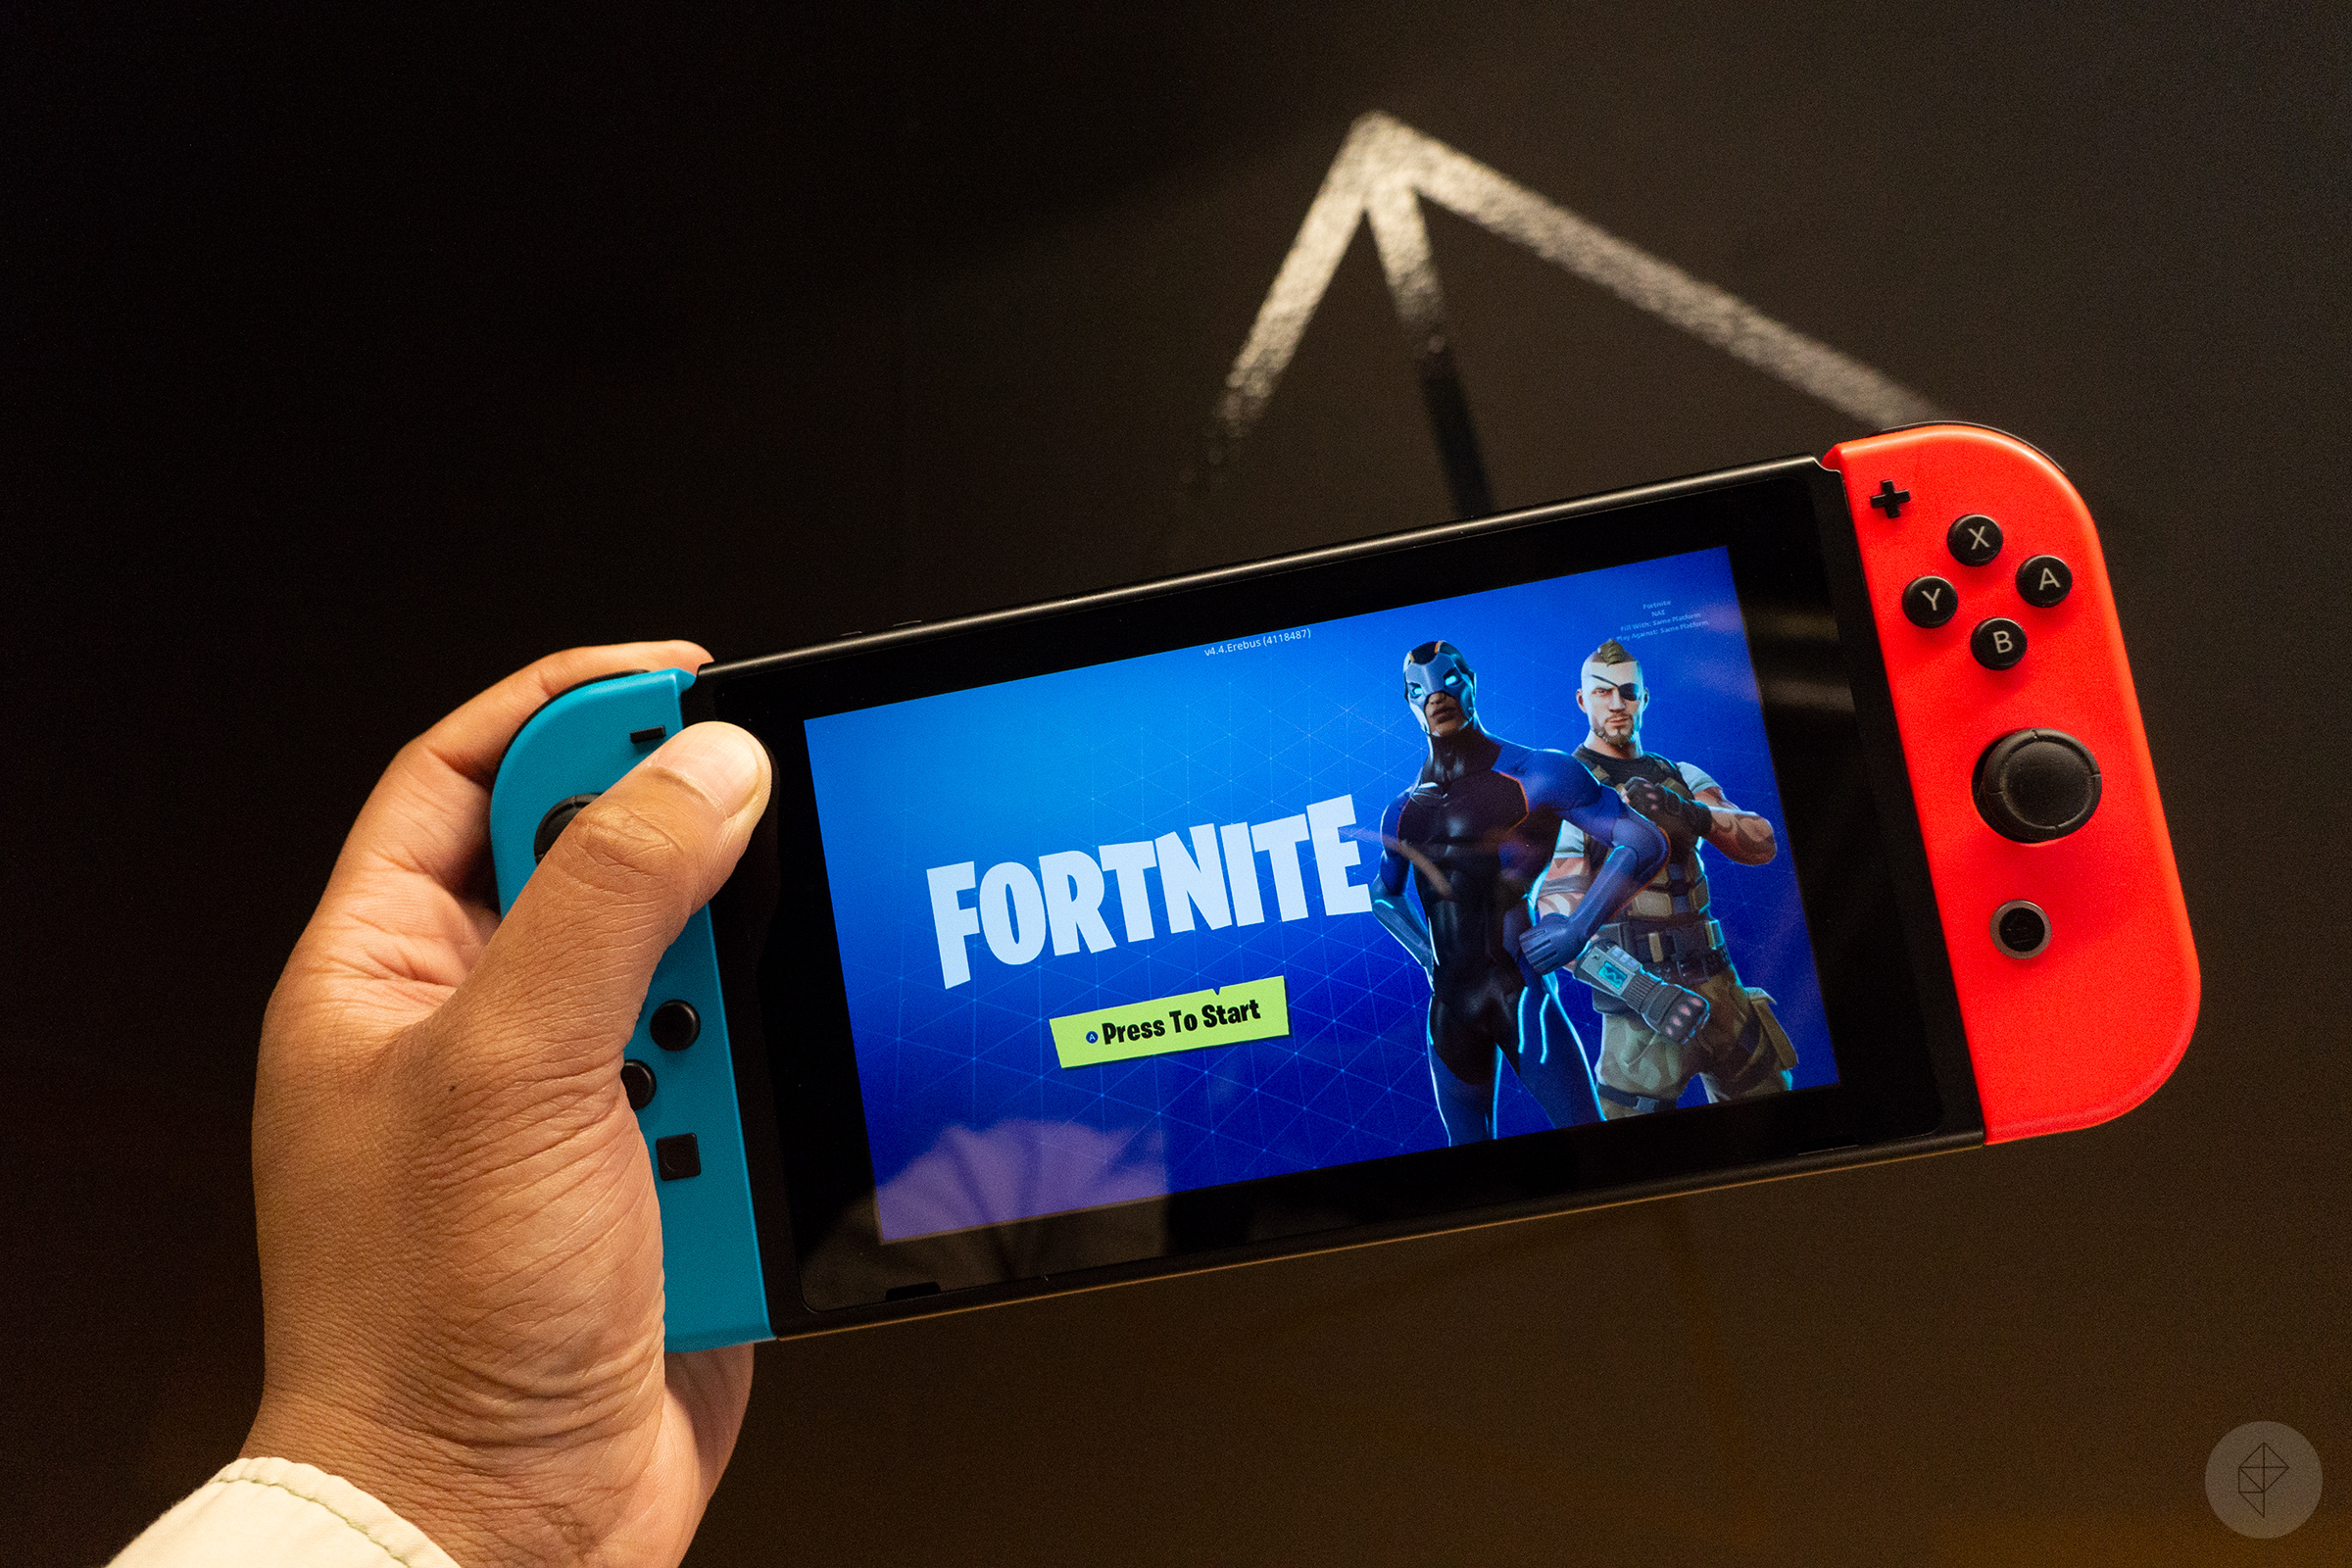 Ps4 And Switch Fortnite Accounts Lock Each Other Out Players